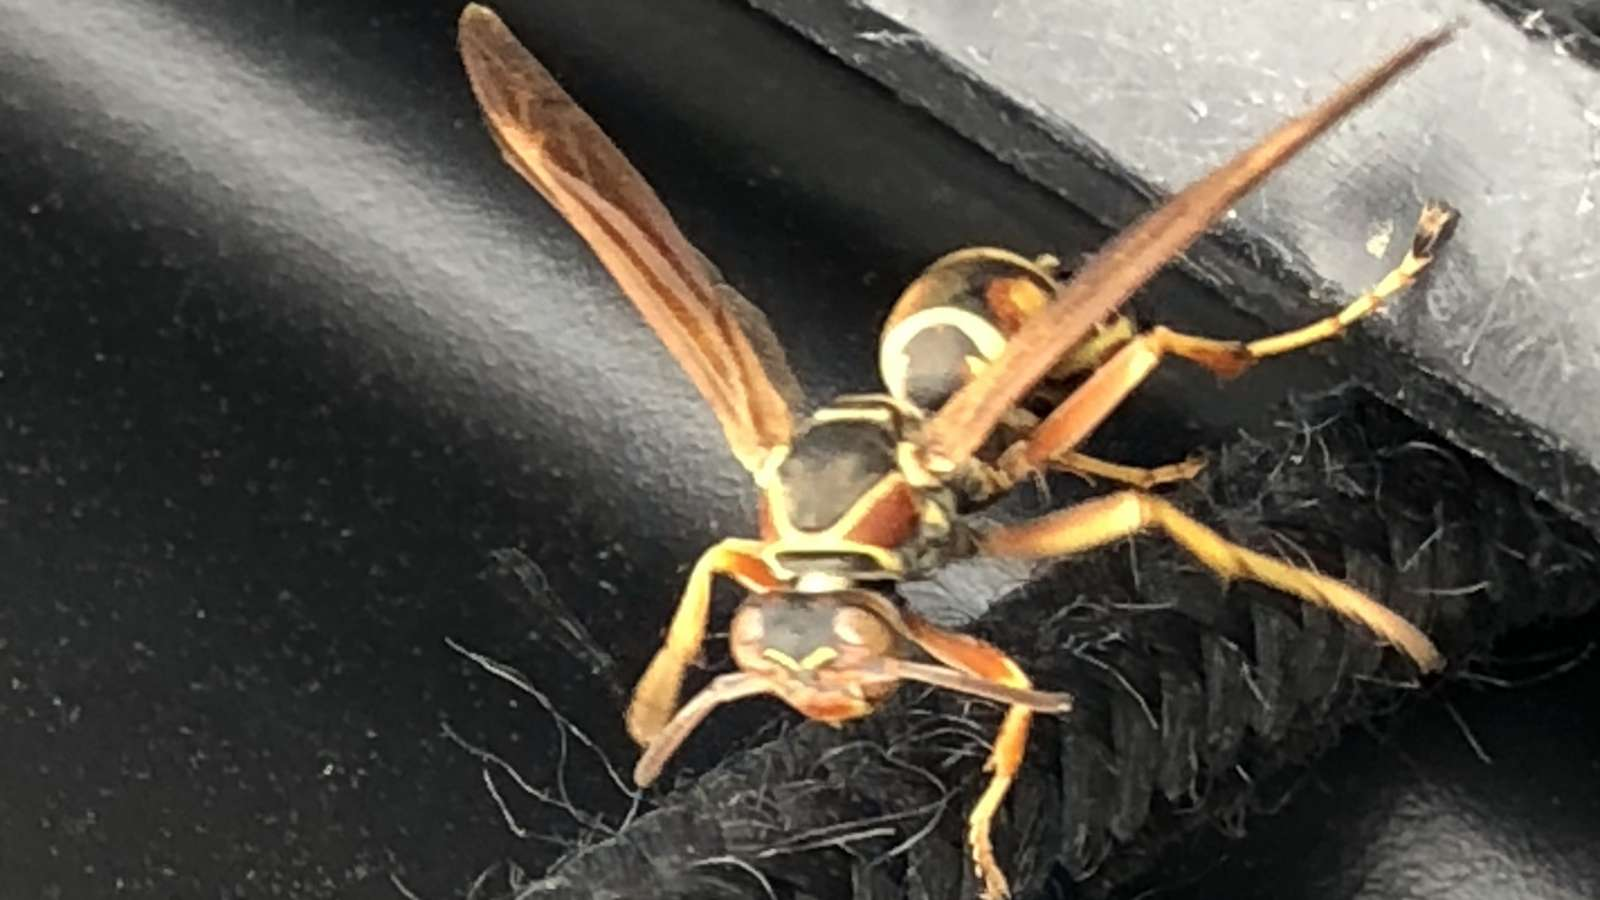 A Wasp on a Cord